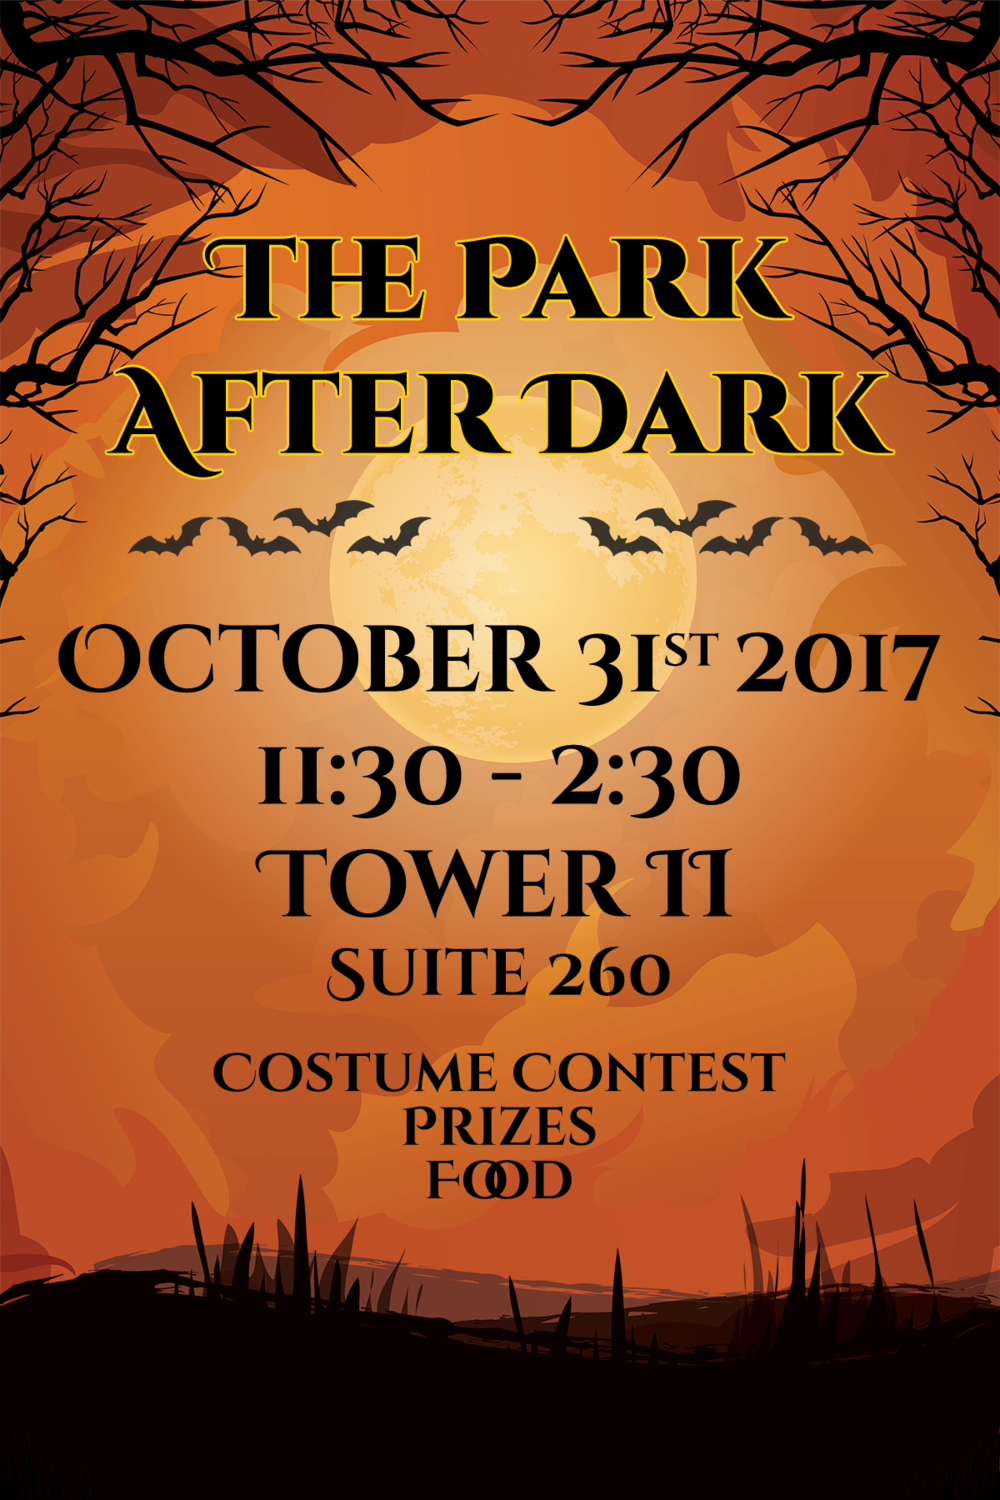 park-Towers-Tenant-Holiday-events-Halloween-park-after-dark-2017.png